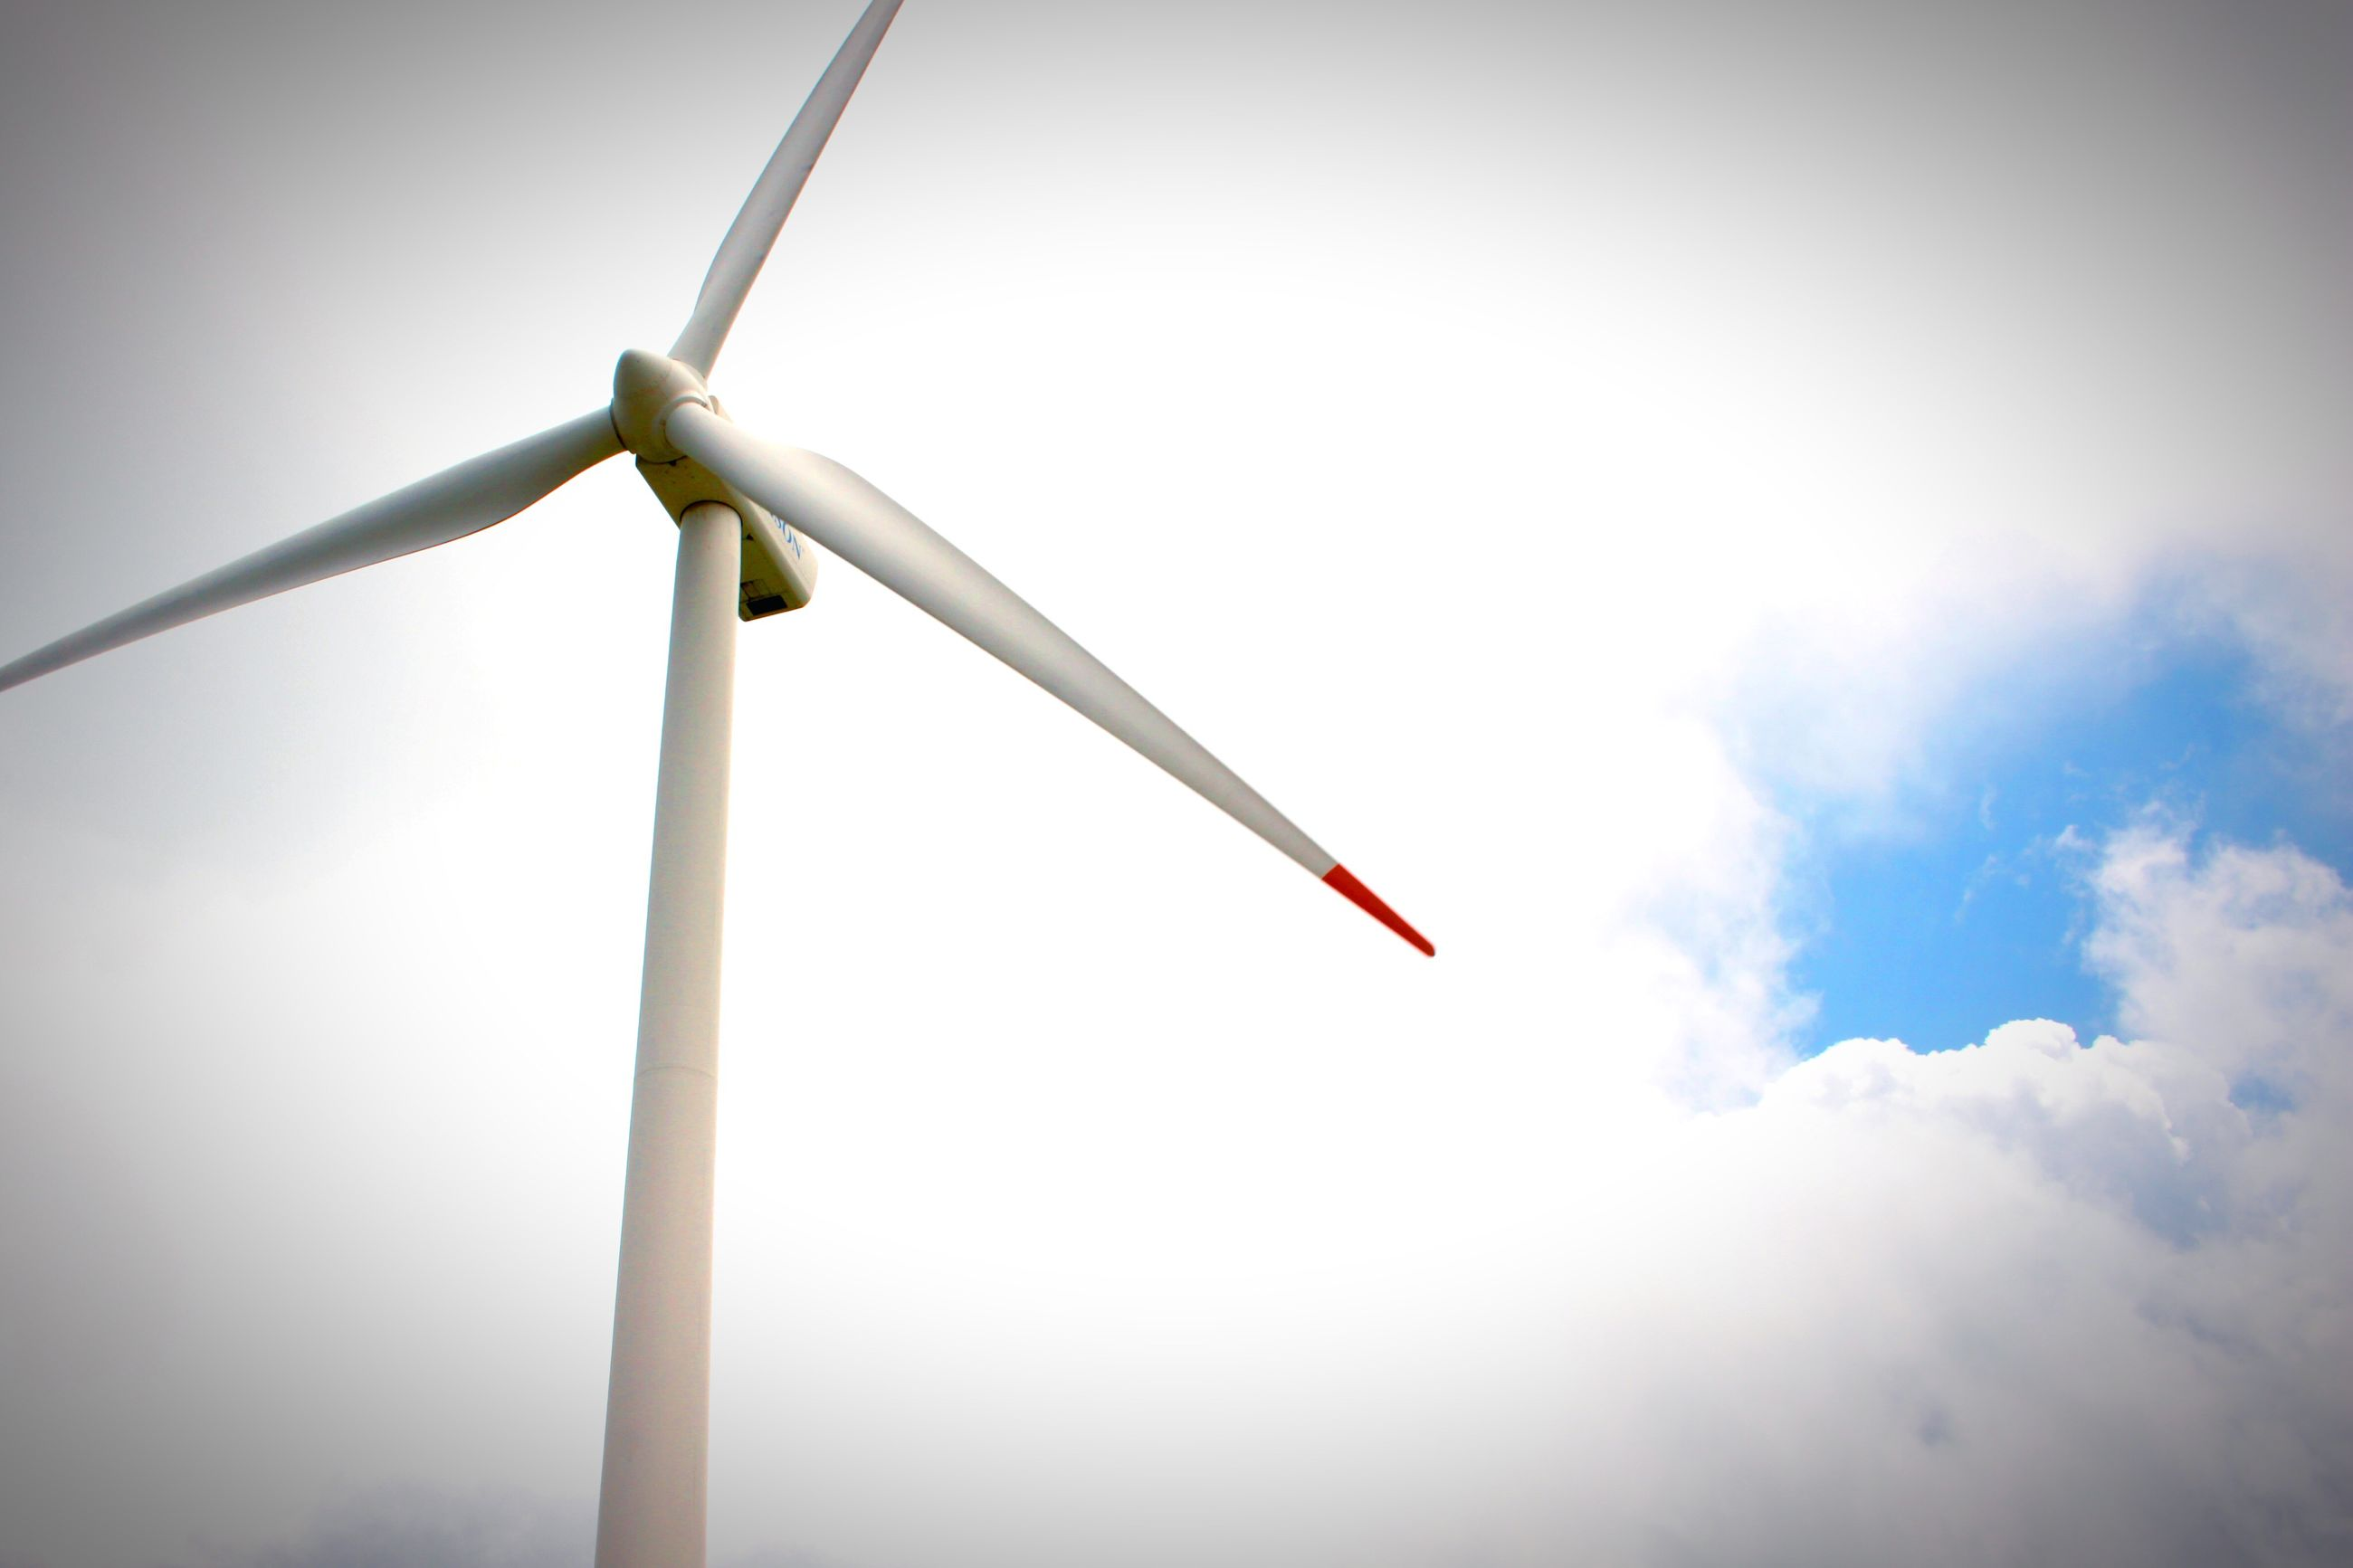 alternative energy, renewable energy, wind turbine, wind power, fuel and power generation, low angle view, environmental conservation, windmill, industrial windmill, day, no people, sky, outdoors, technology, nature, close-up